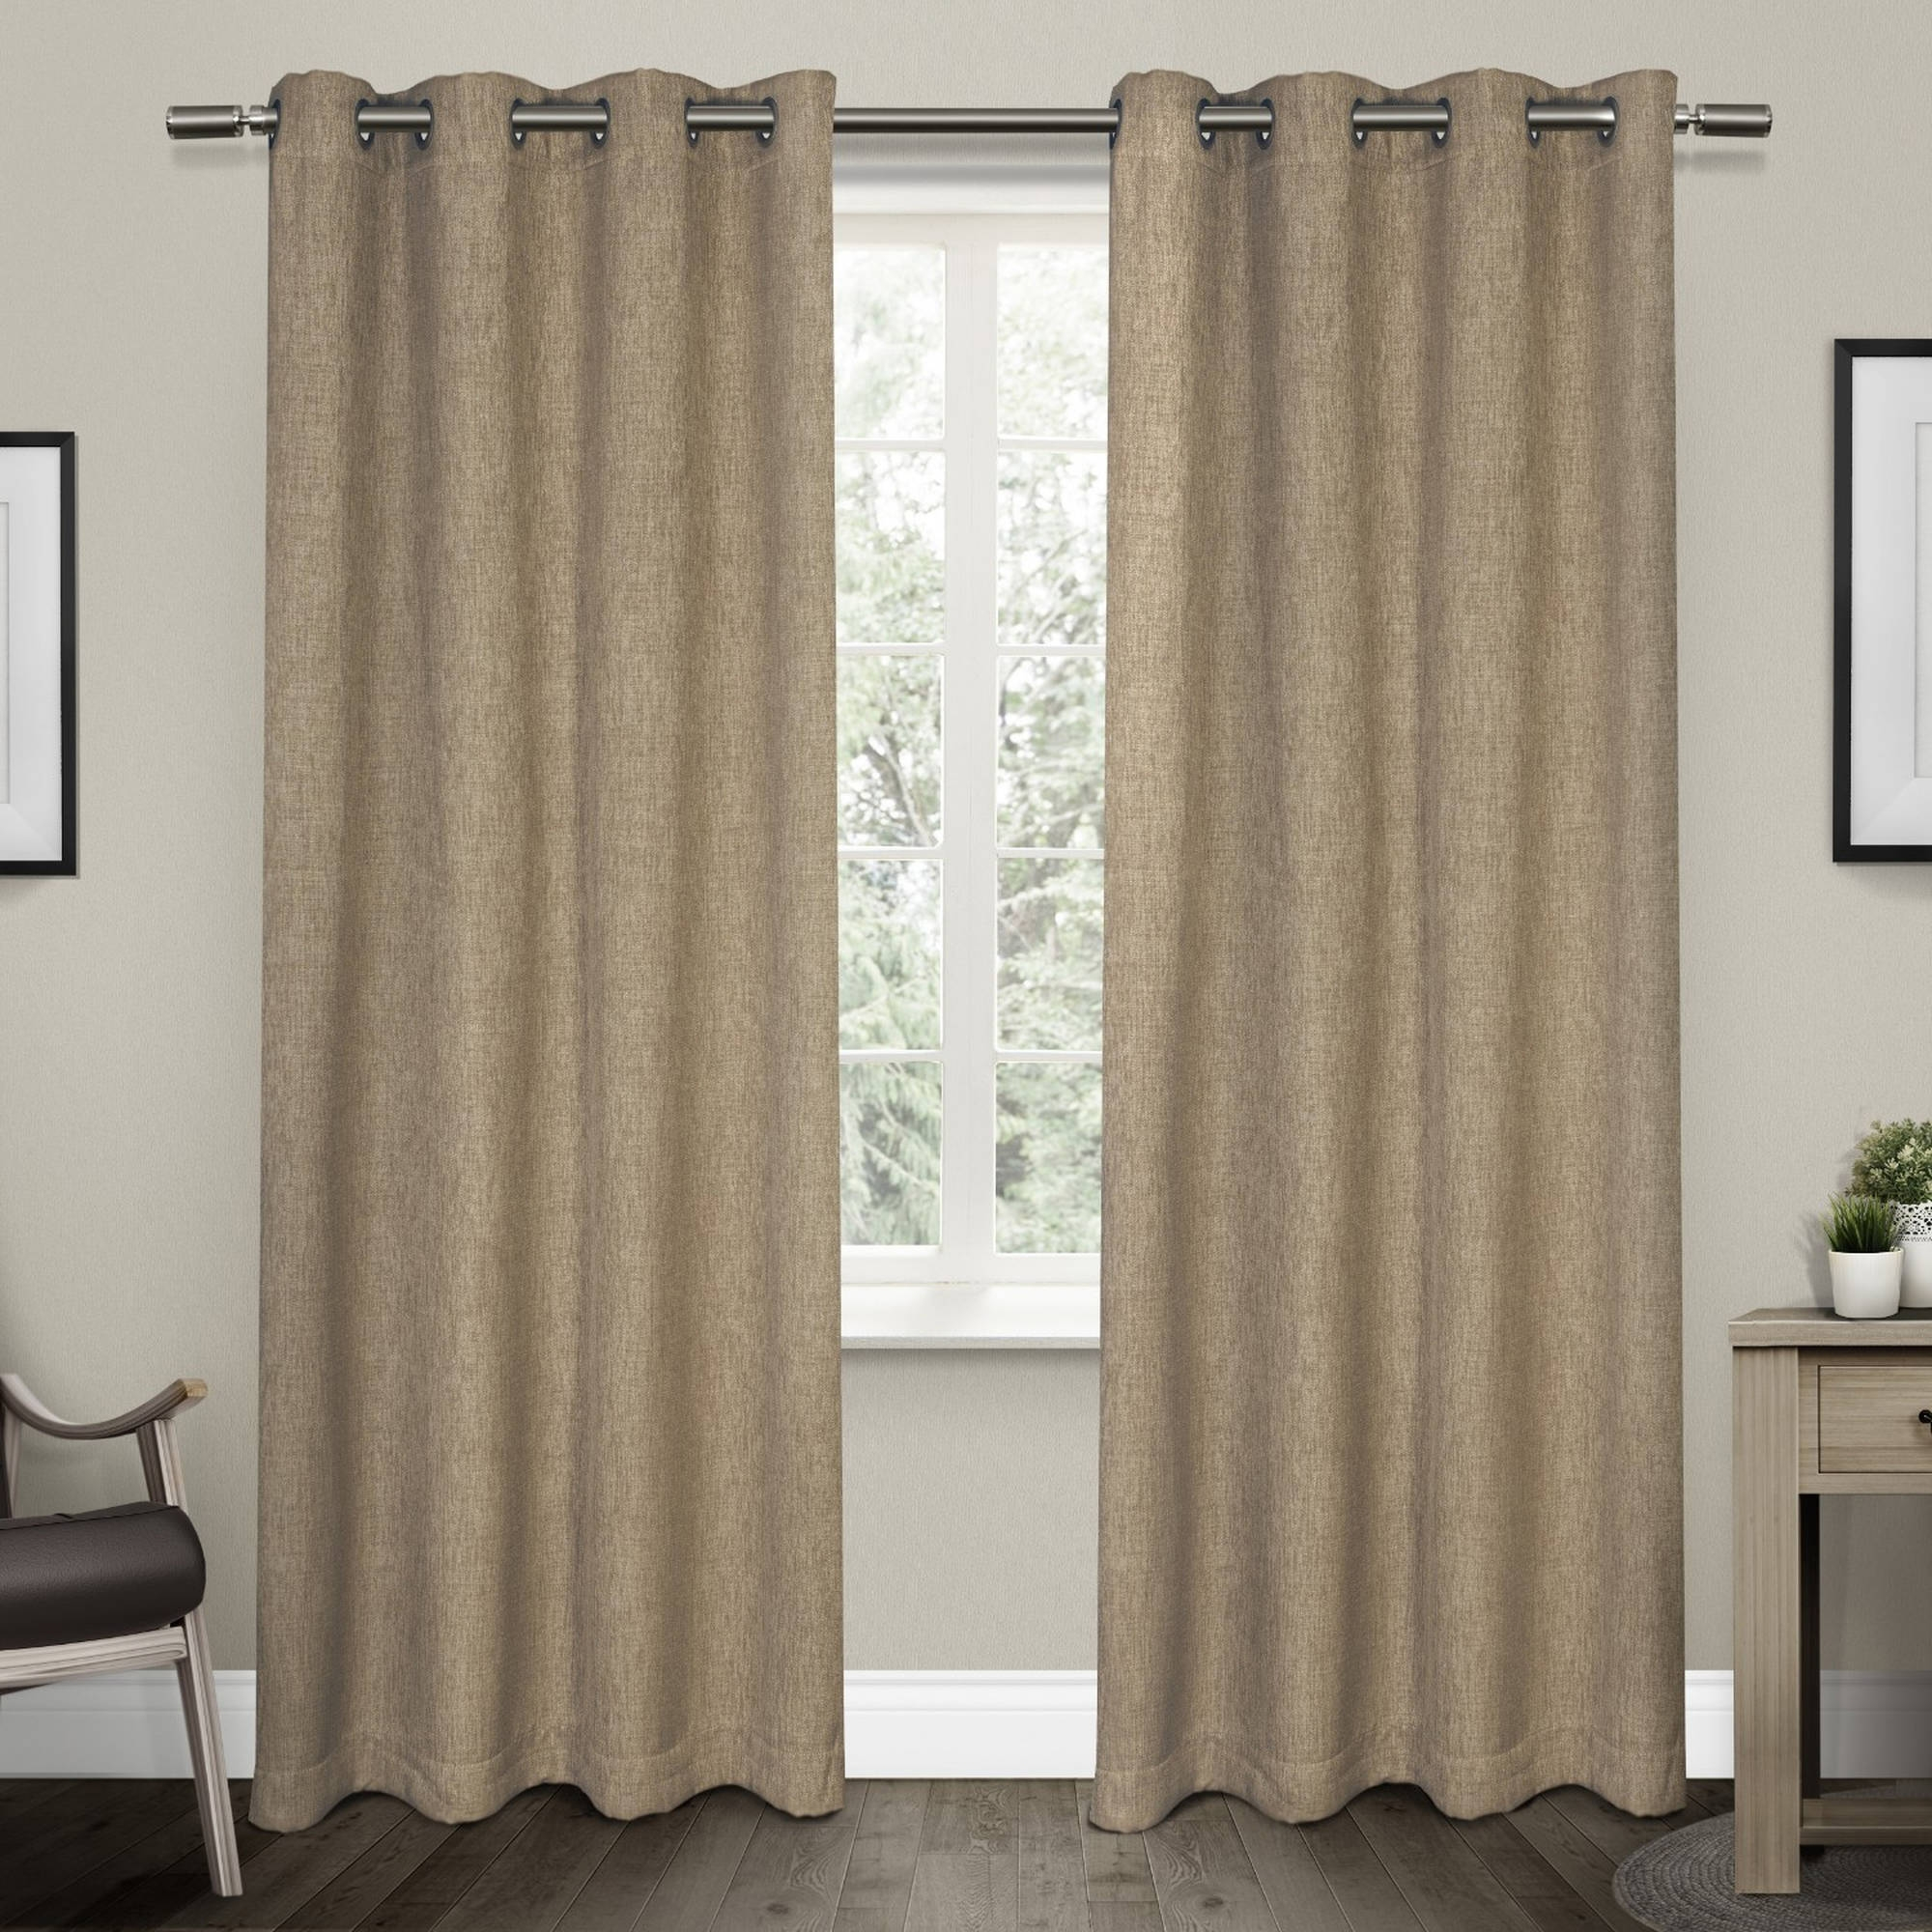 Linen Curtains Pertaining To 63 Inches Long Curtains (Image 19 of 25)